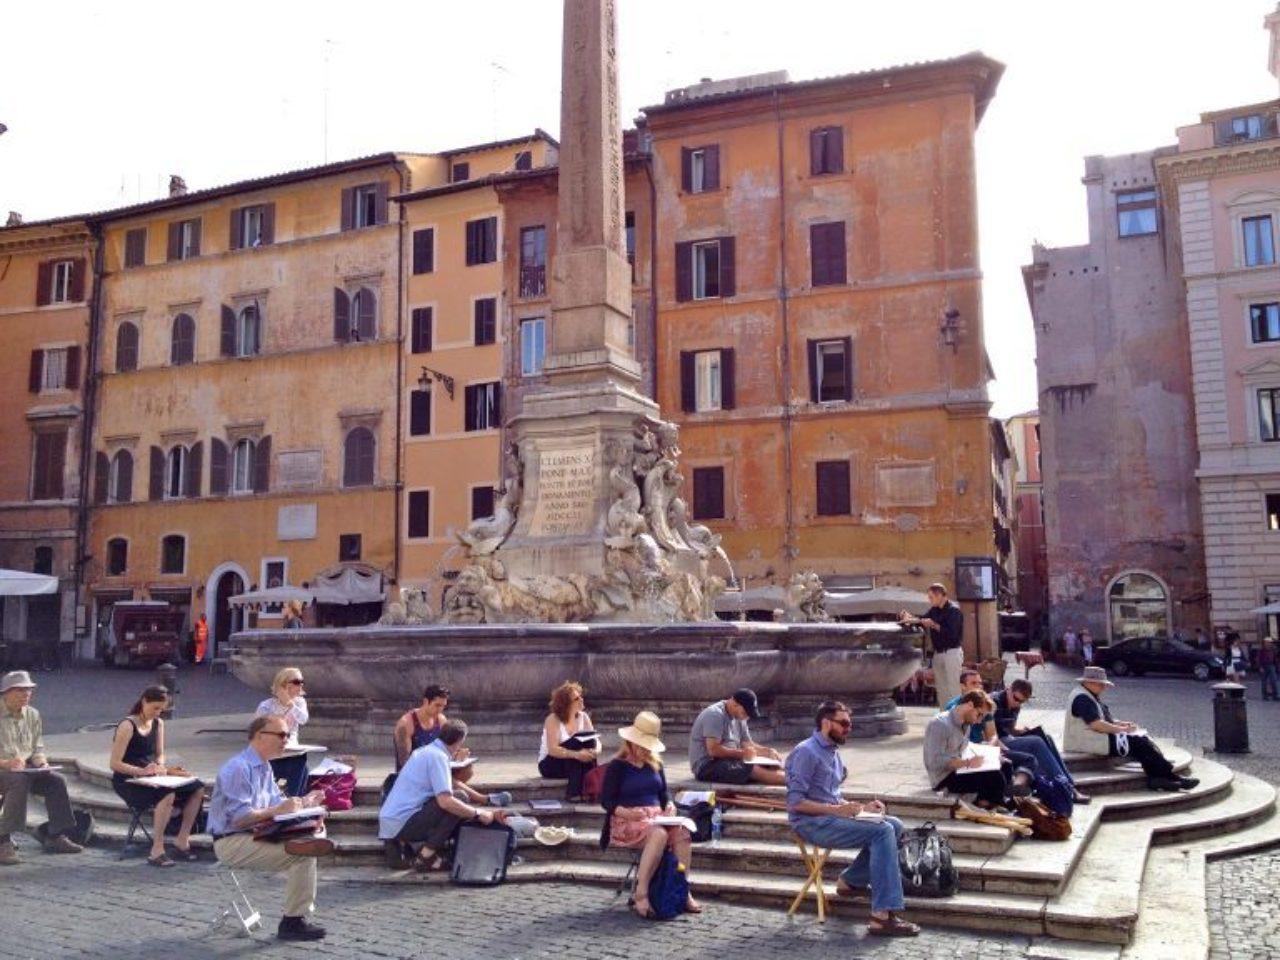 The next Christopher H. Browne Rome Drawing Tour will take place June 3-10